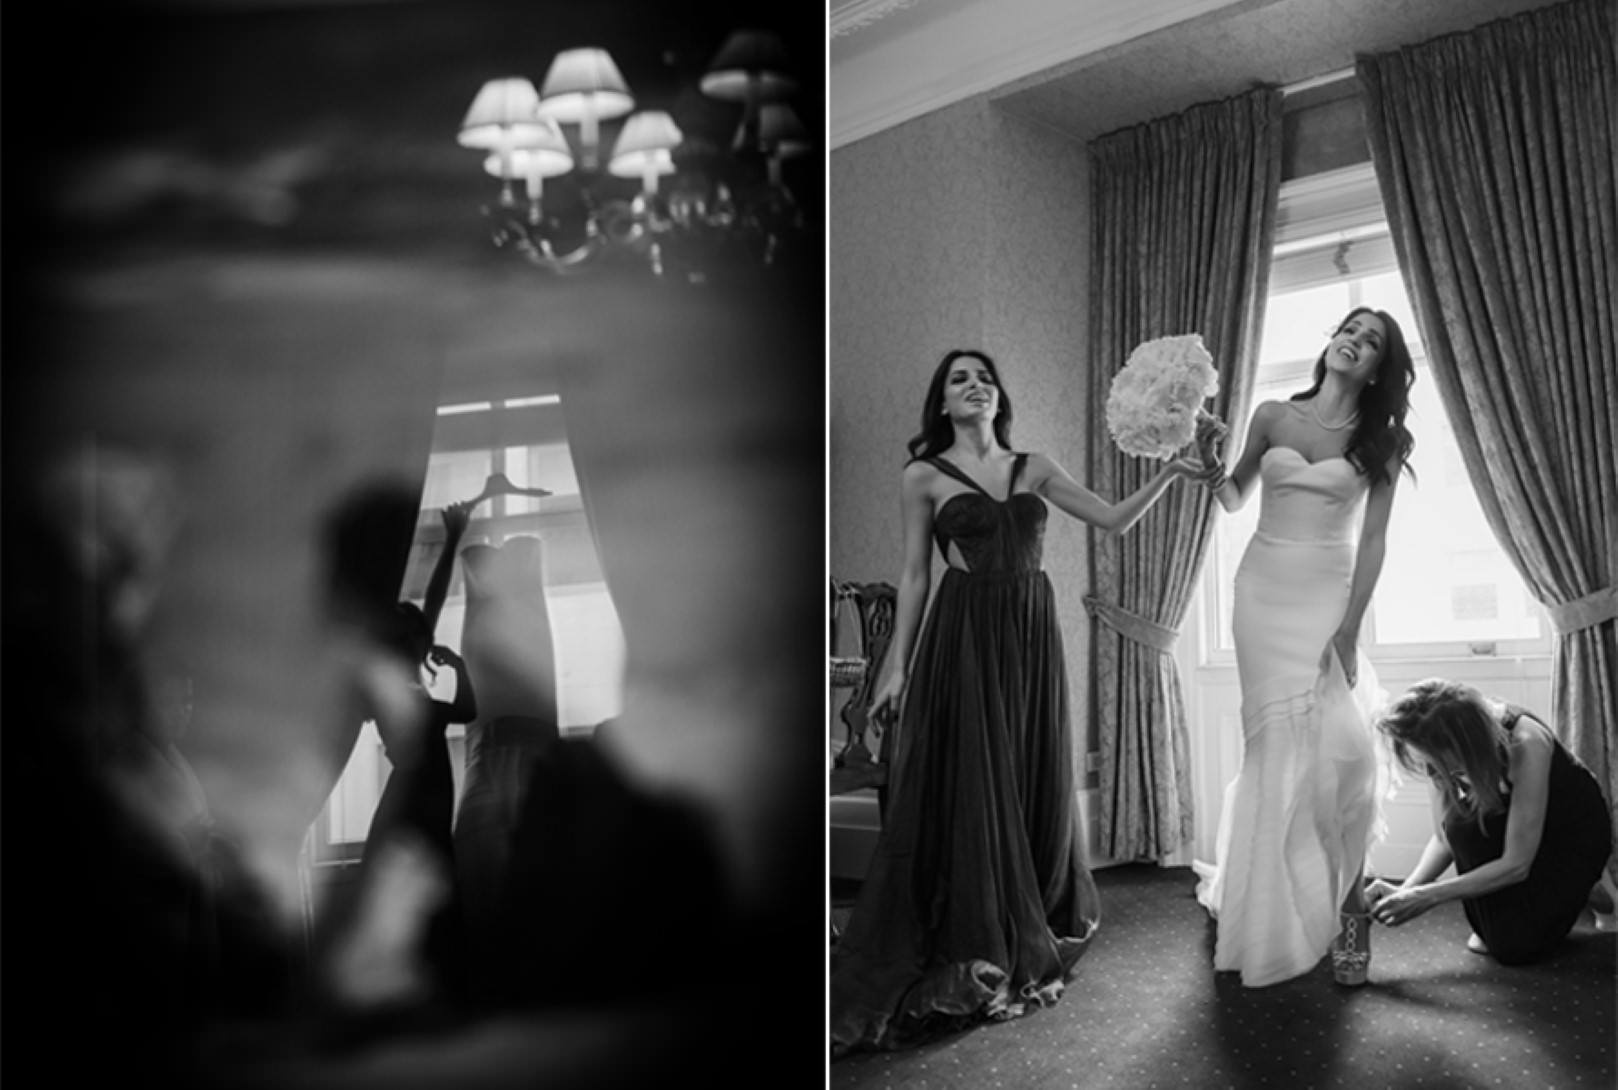 new york city wedding photography photographer photo bride getting ready hanging dress bouquet heels window